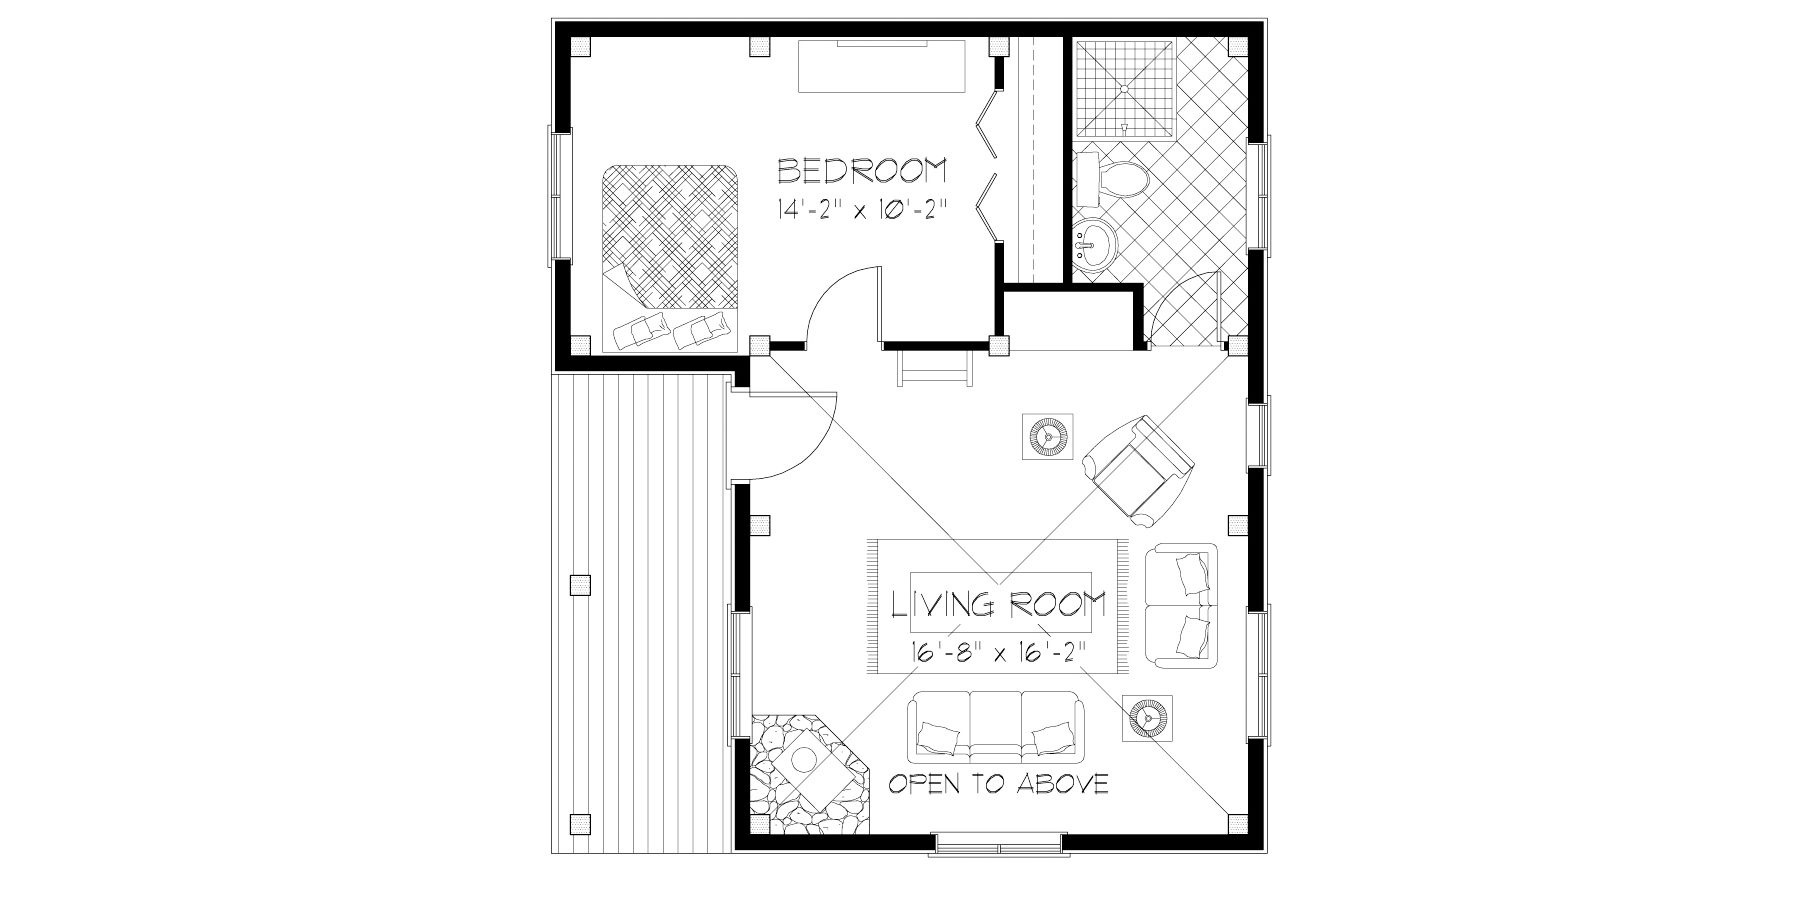 Normerica Timber Frame, House Plan, The Retreat 3143, First Floor Layout